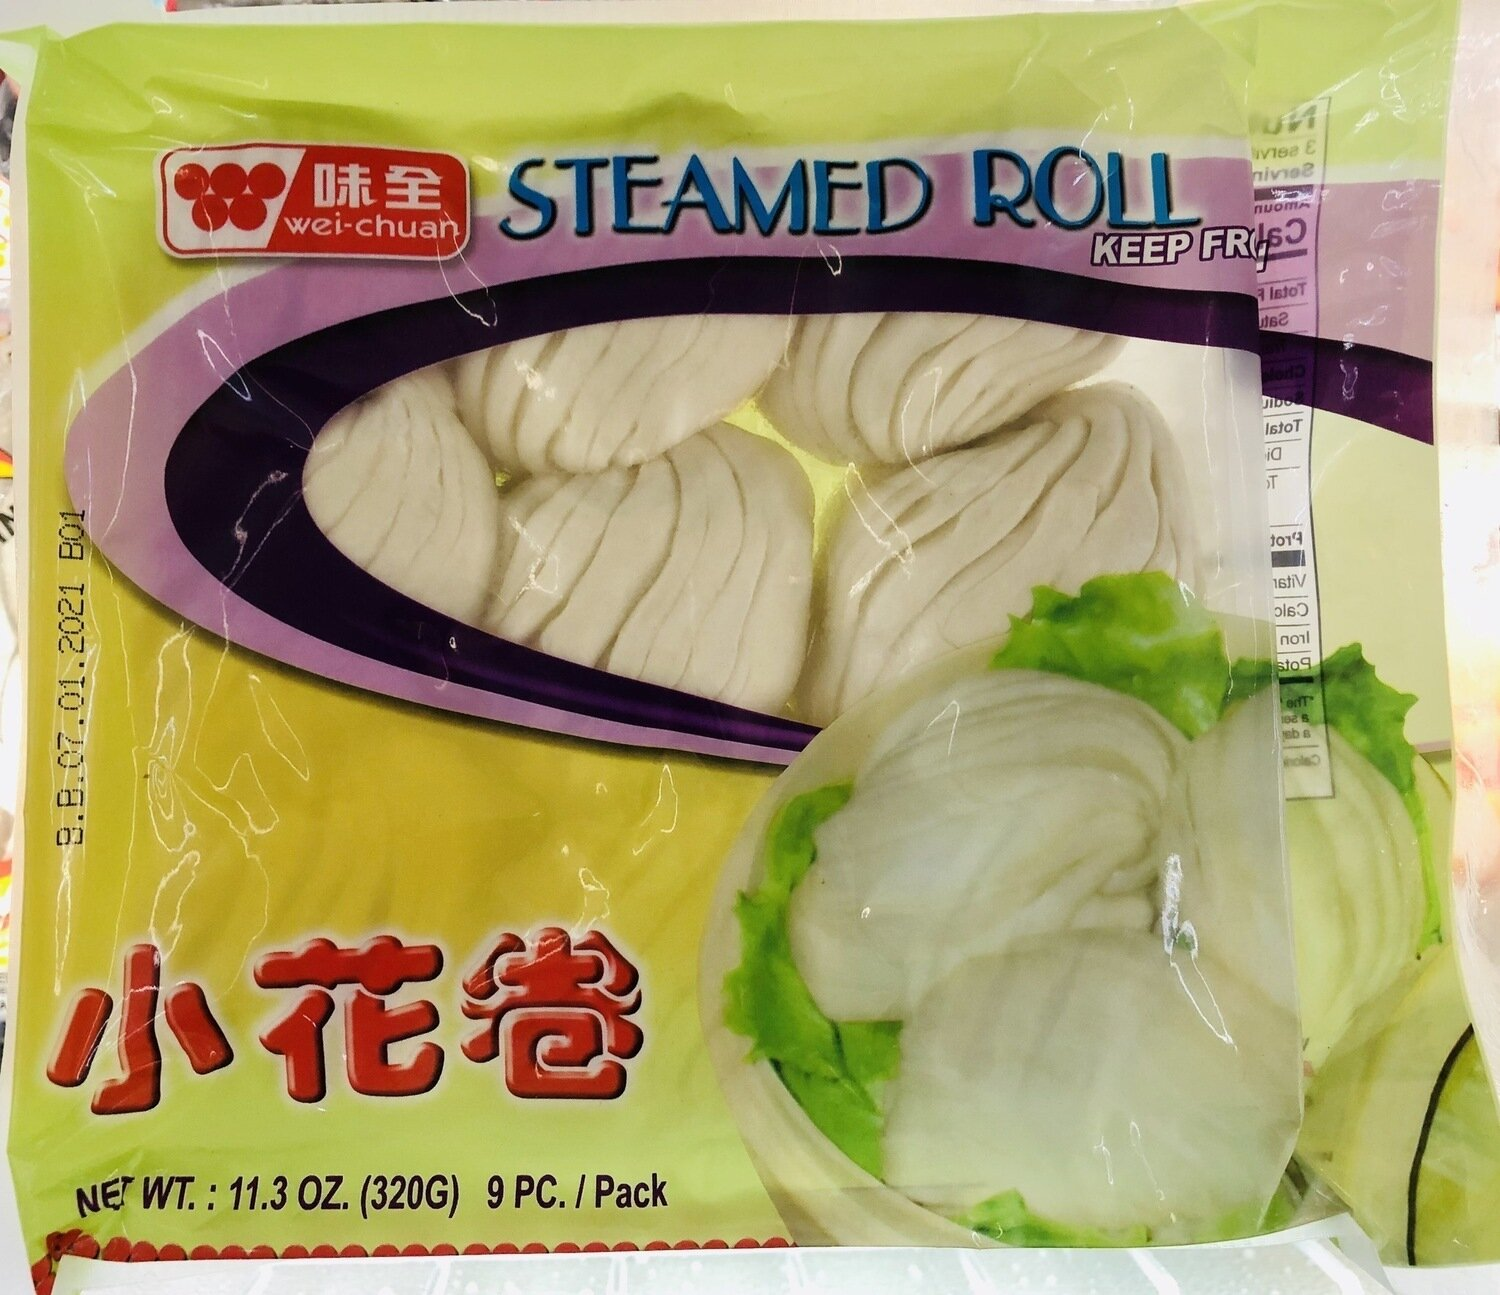 味全小花卷  wei-chuan STEAMED ROLL​~11.3OZ.(320G) 9PC/PACK​